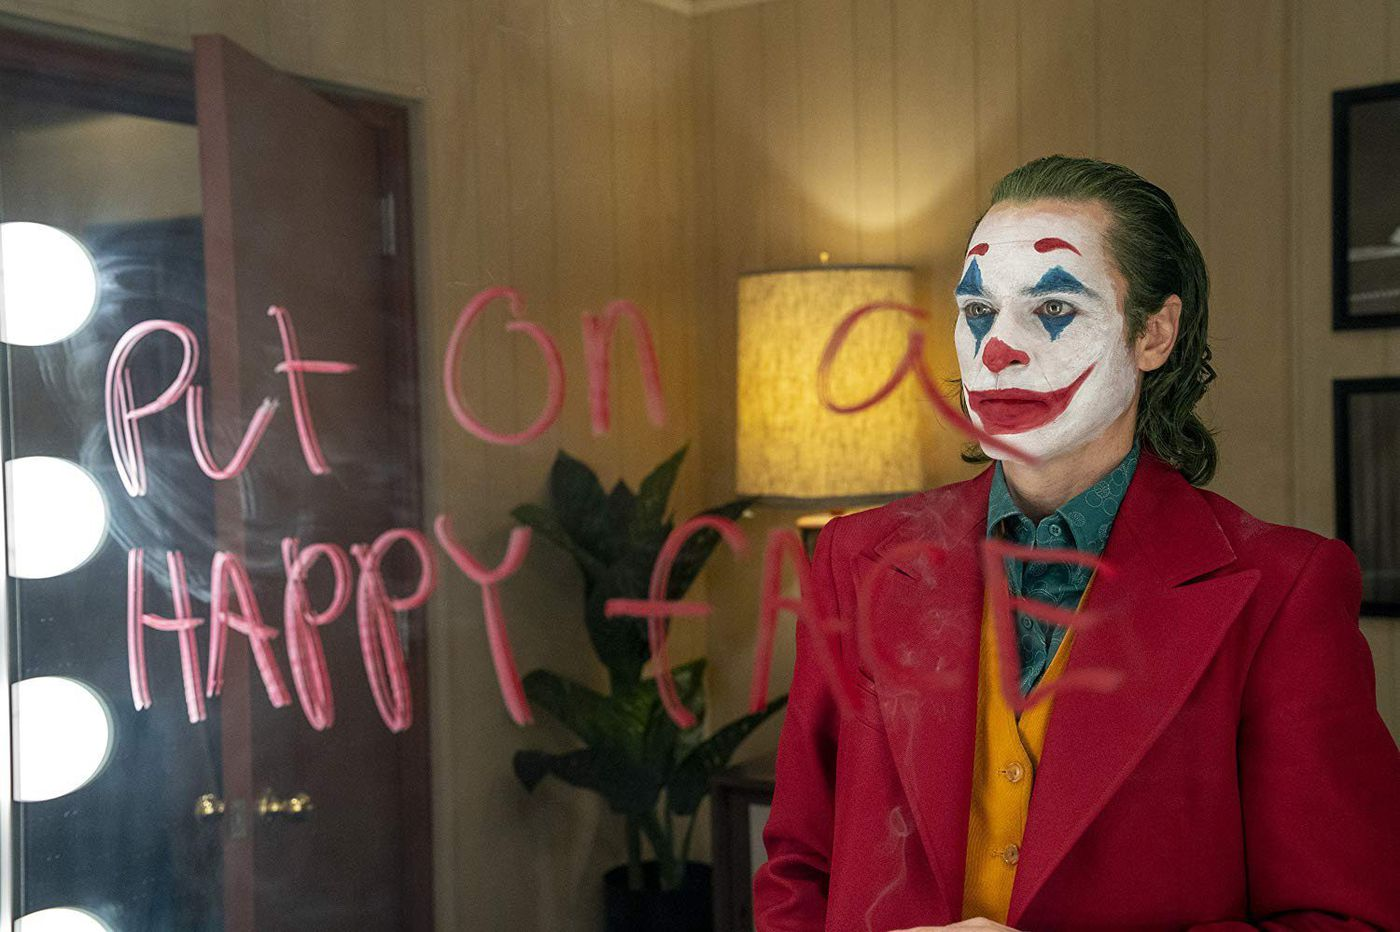 Philadelphia police 'monitoring' screenings of 'Joker,' but have no credible threats